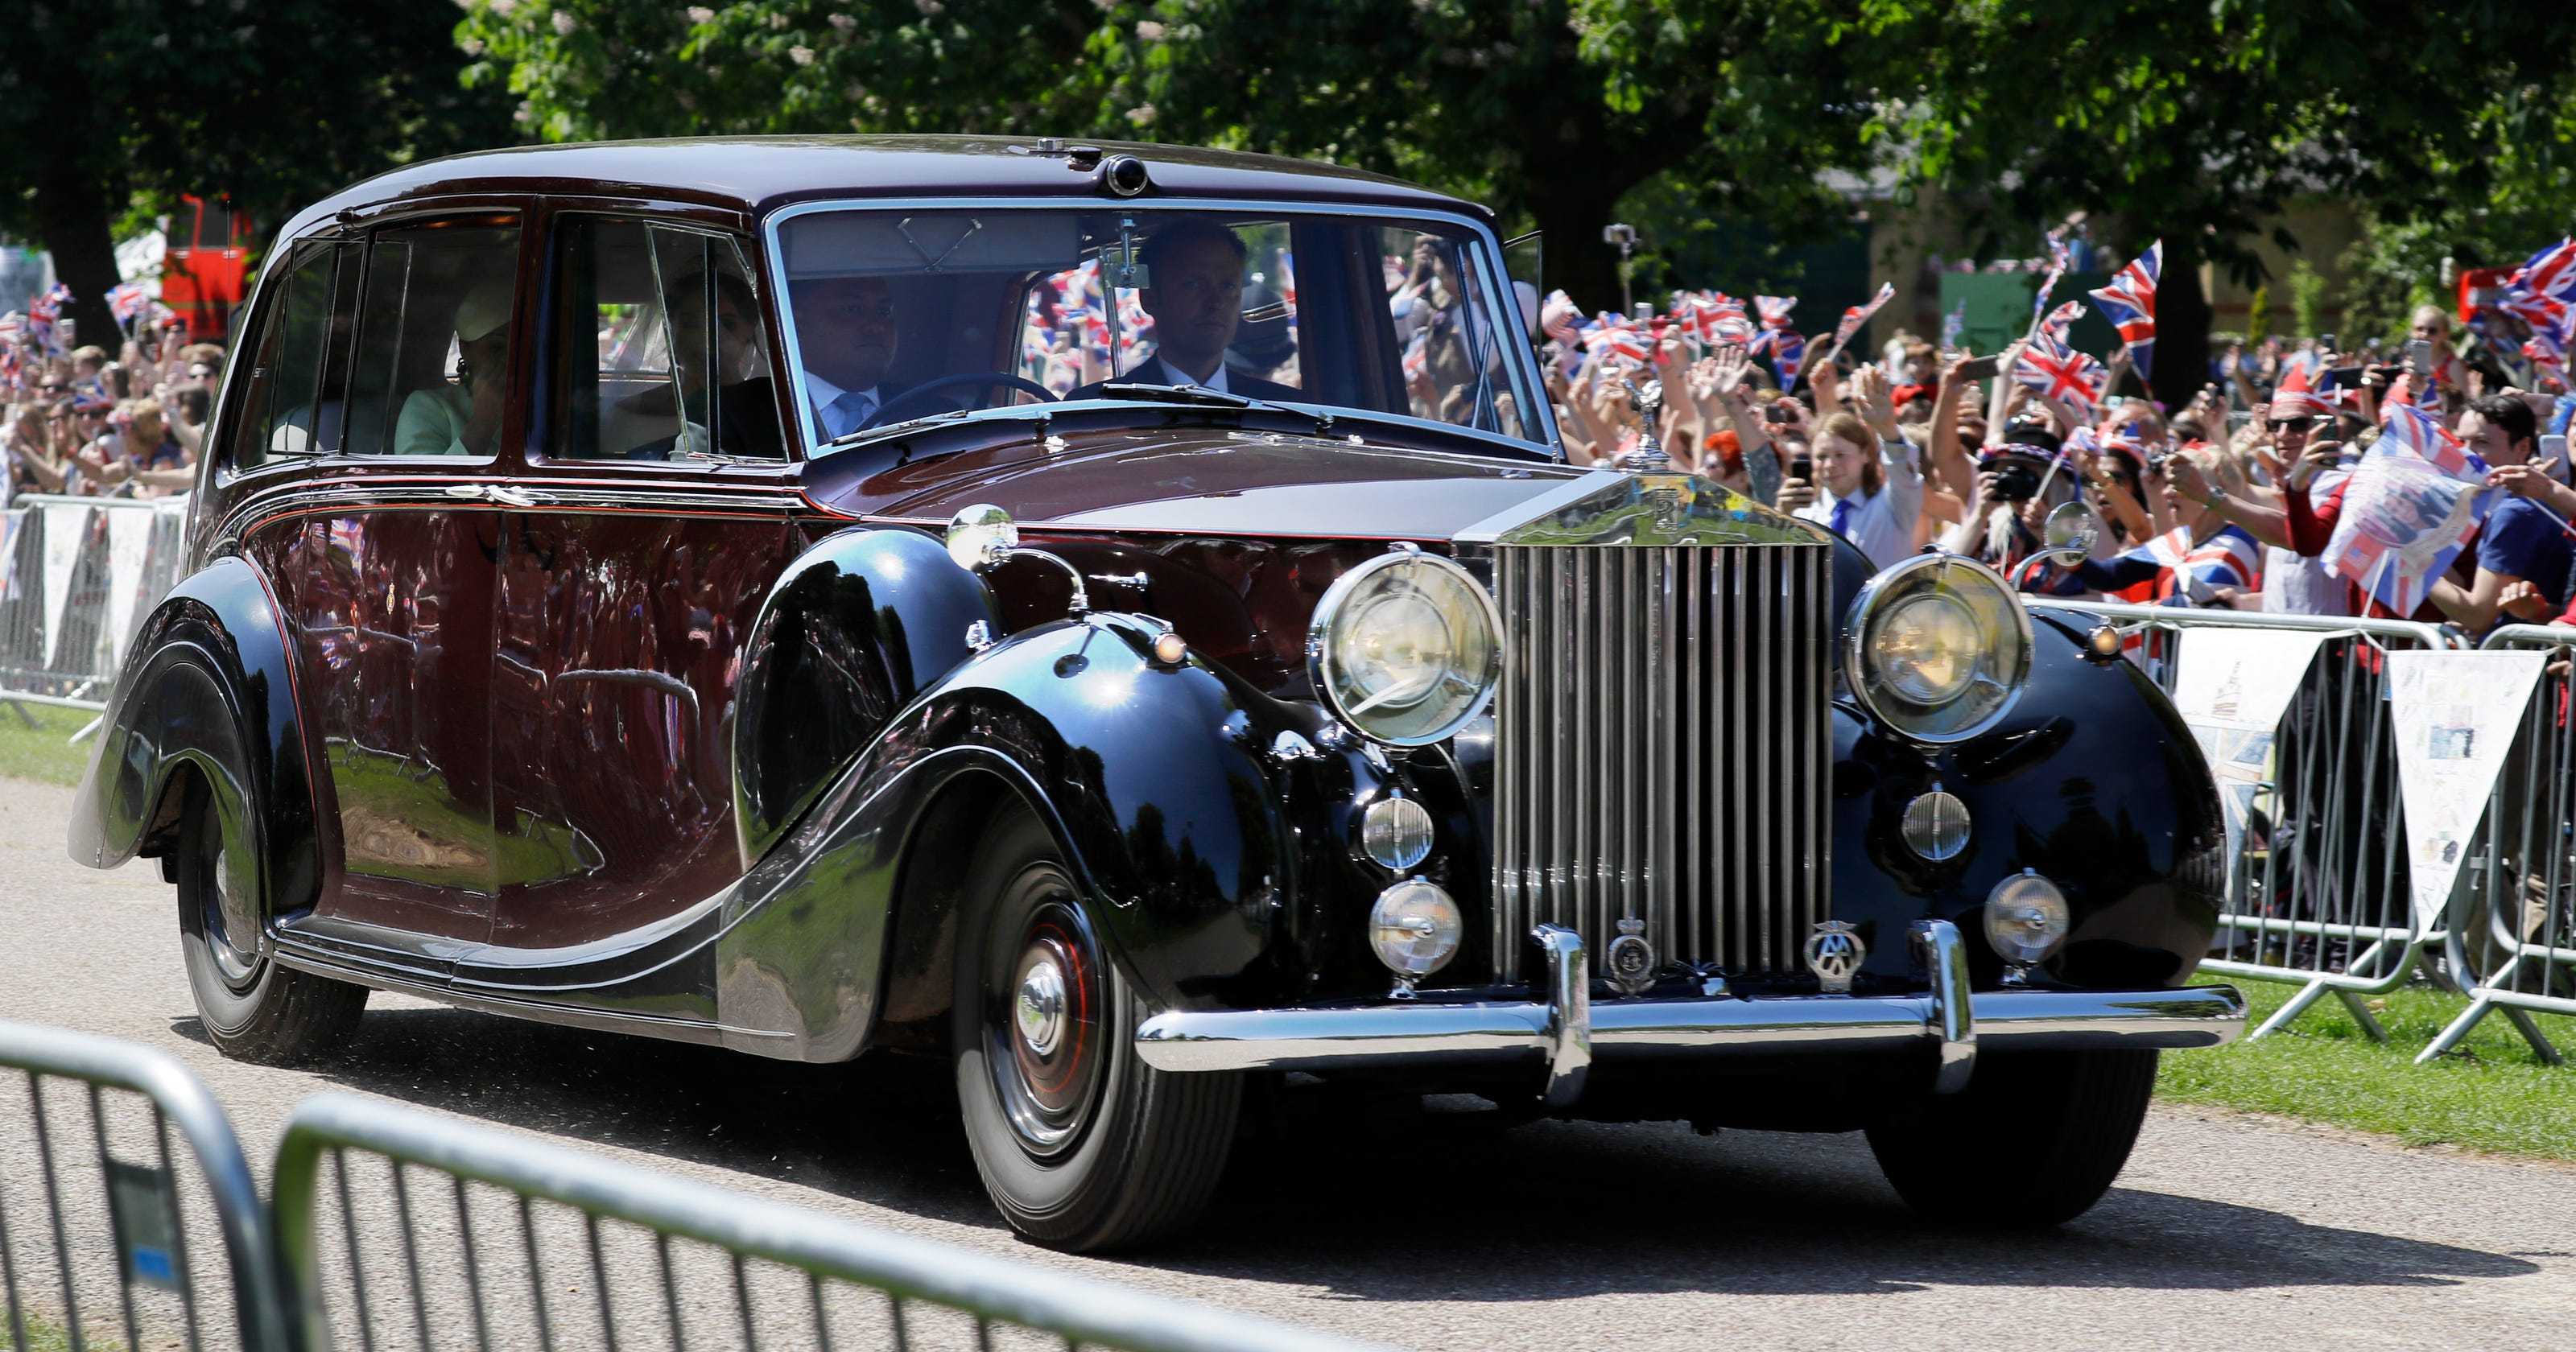 Meghan Markle Prince Harry Wedding Is Stage To Display British Cars